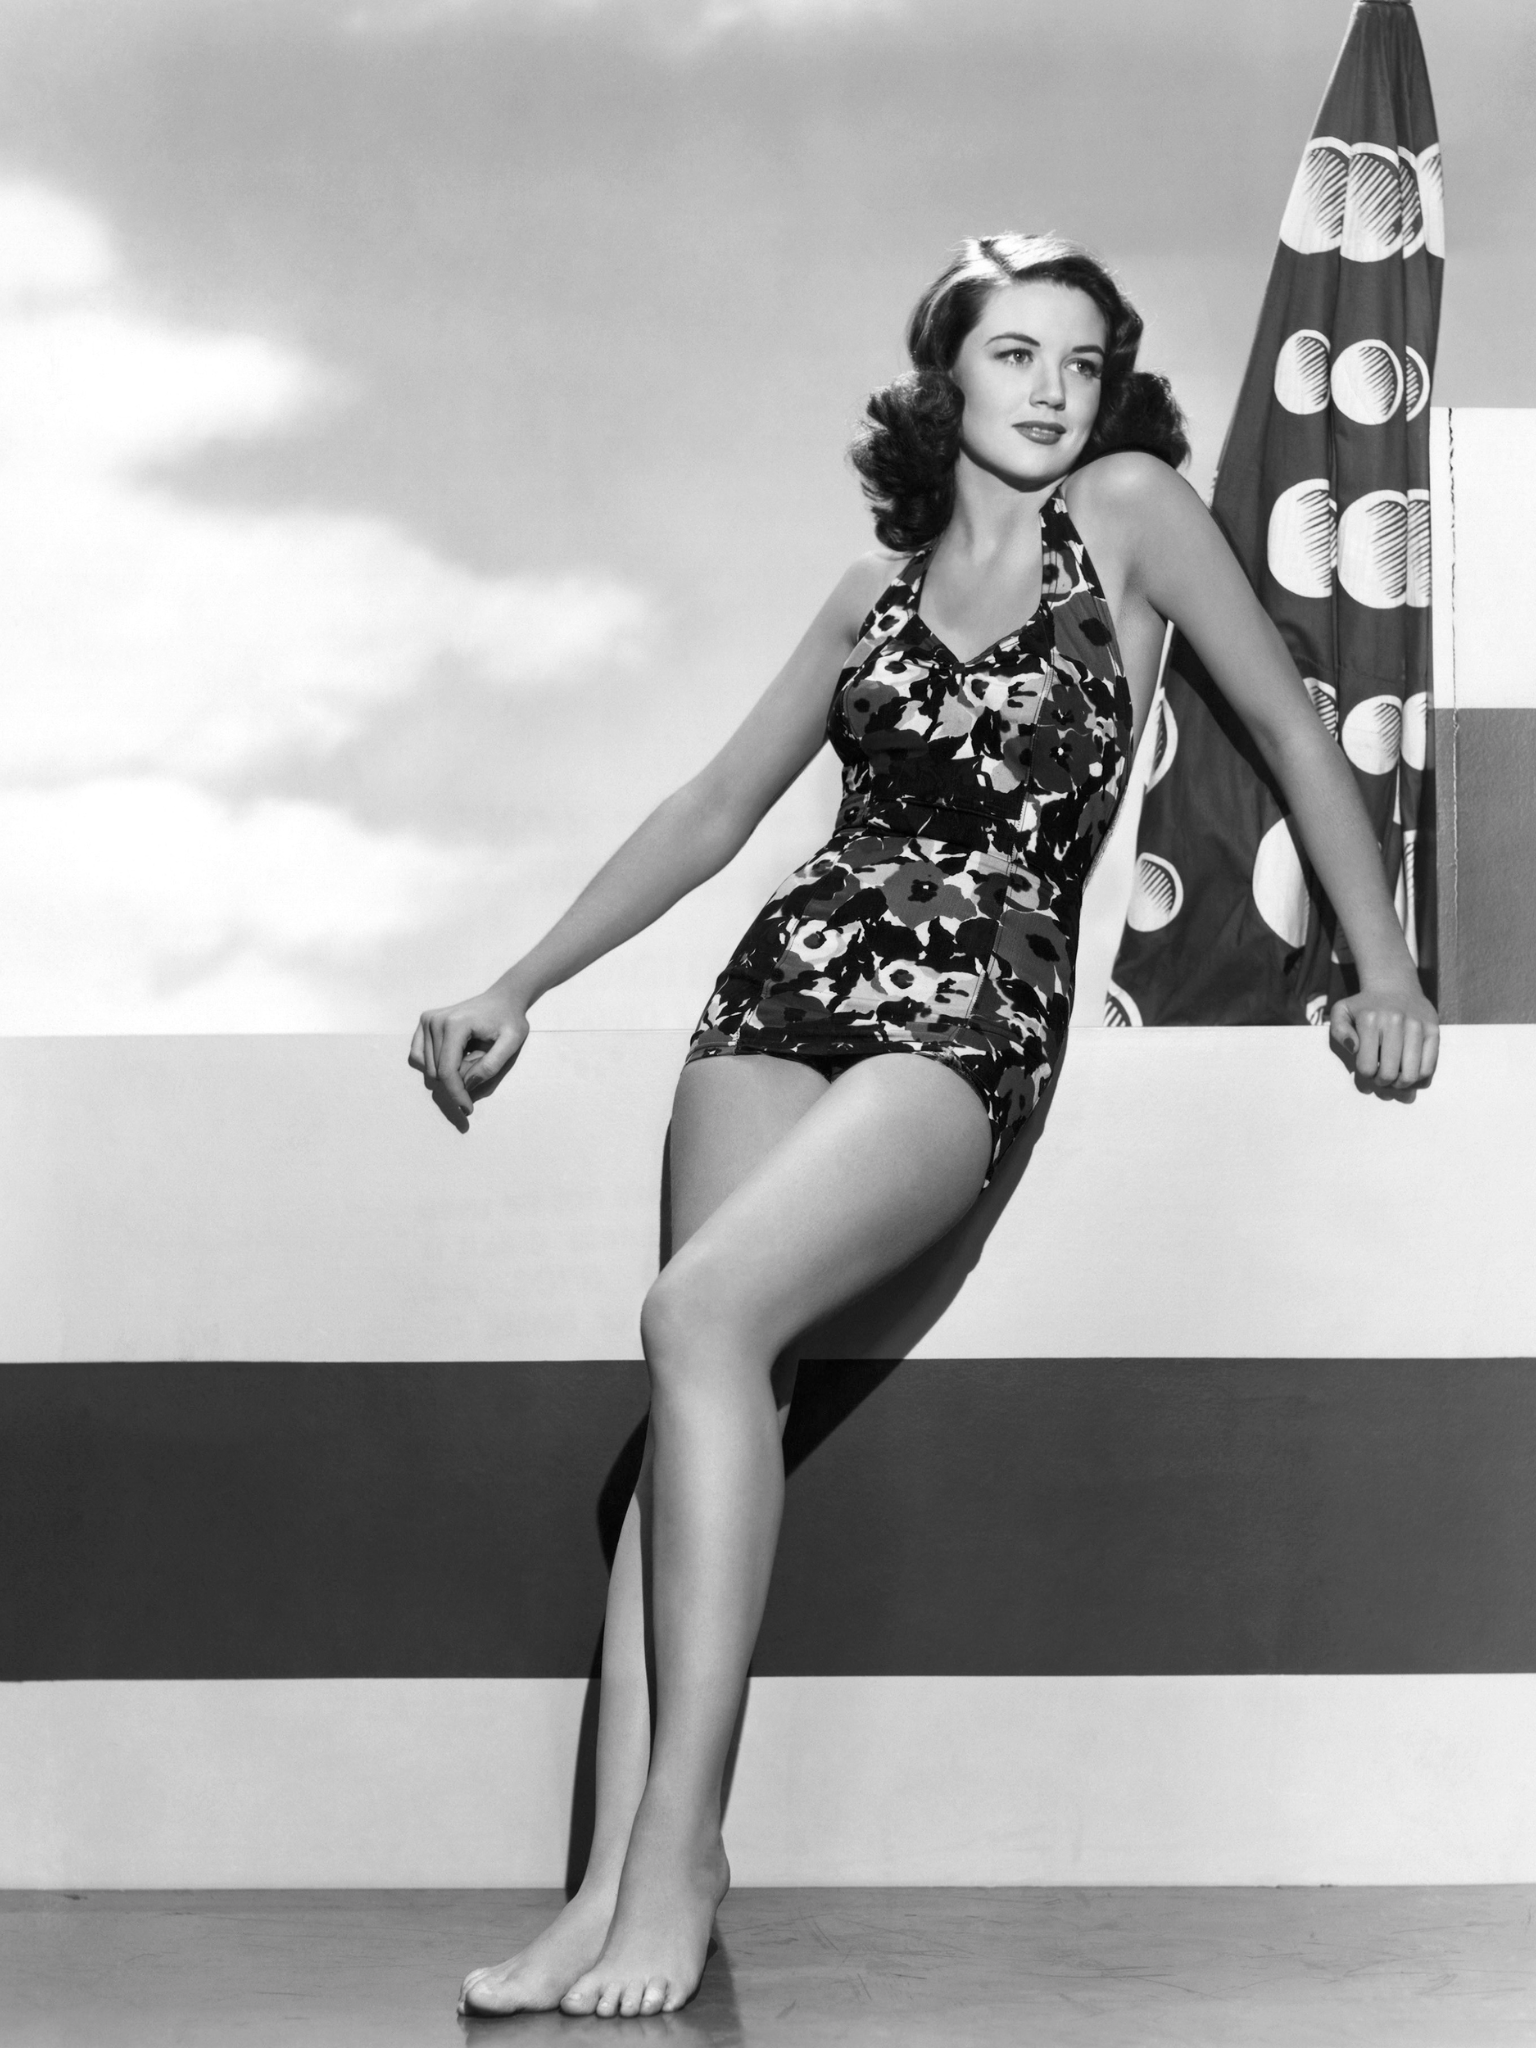 Discussion on this topic: Emily Tennant, dorothy-malone/